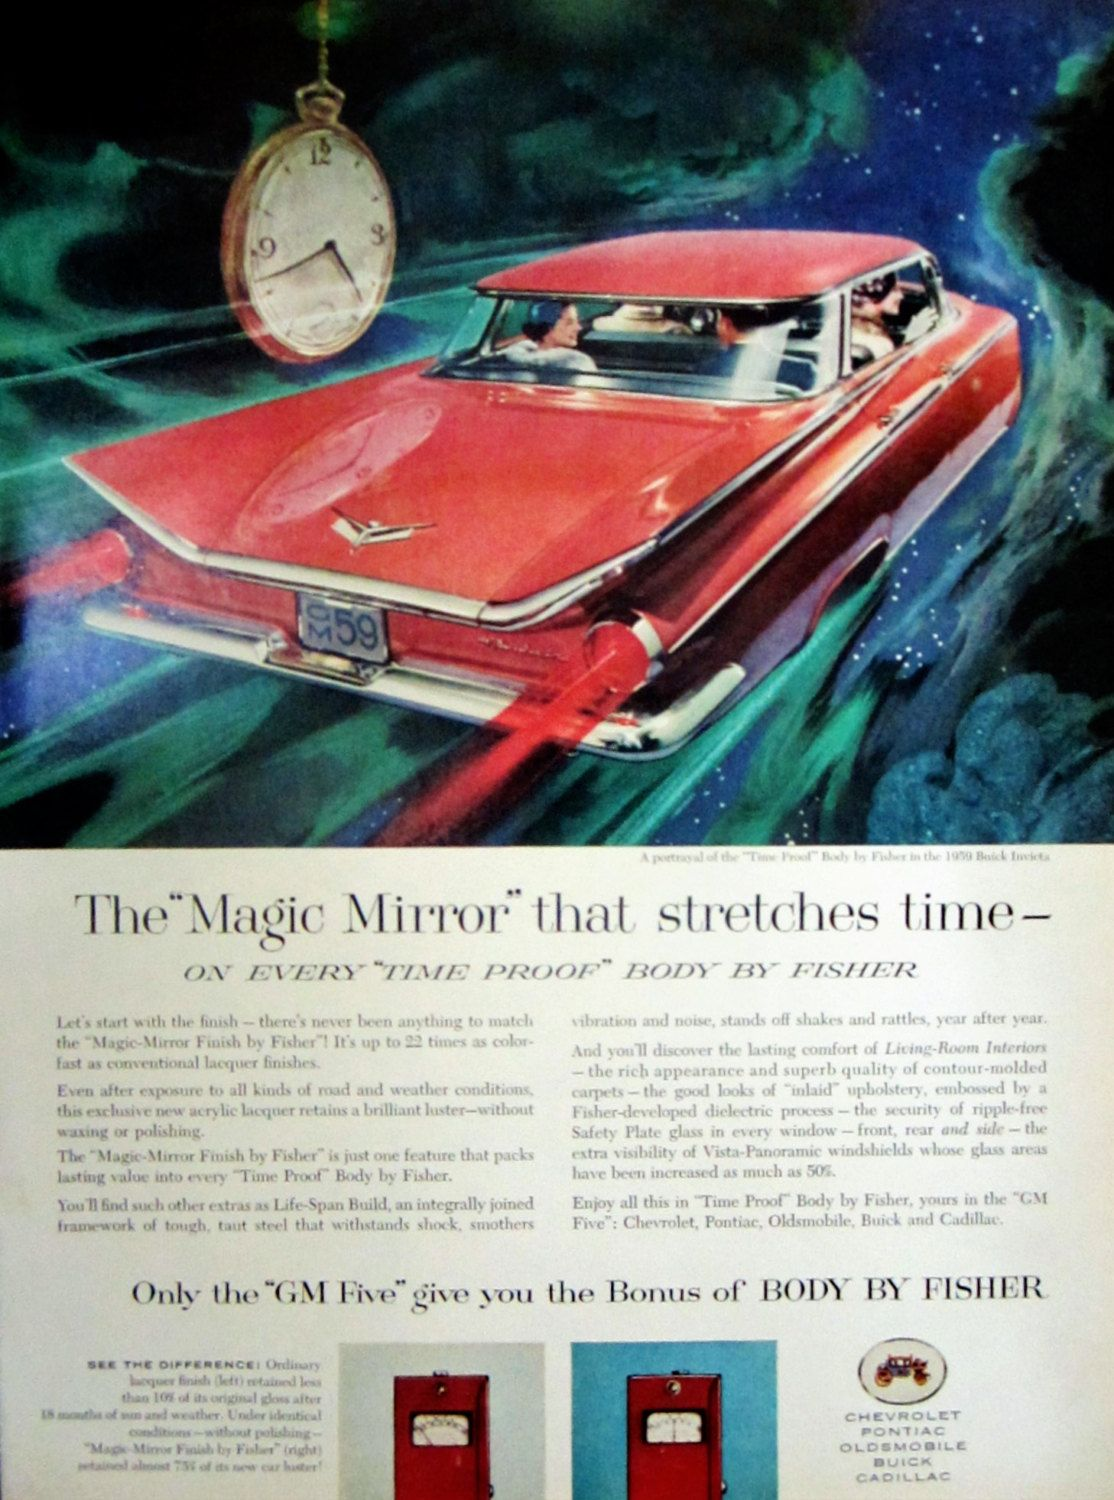 1958 59 buick invicta gm body by fisher vintage advertisement 1958 59 buick invicta gm body by fisher vintage advertisement classic car automotive wall art fandeluxe Image collections